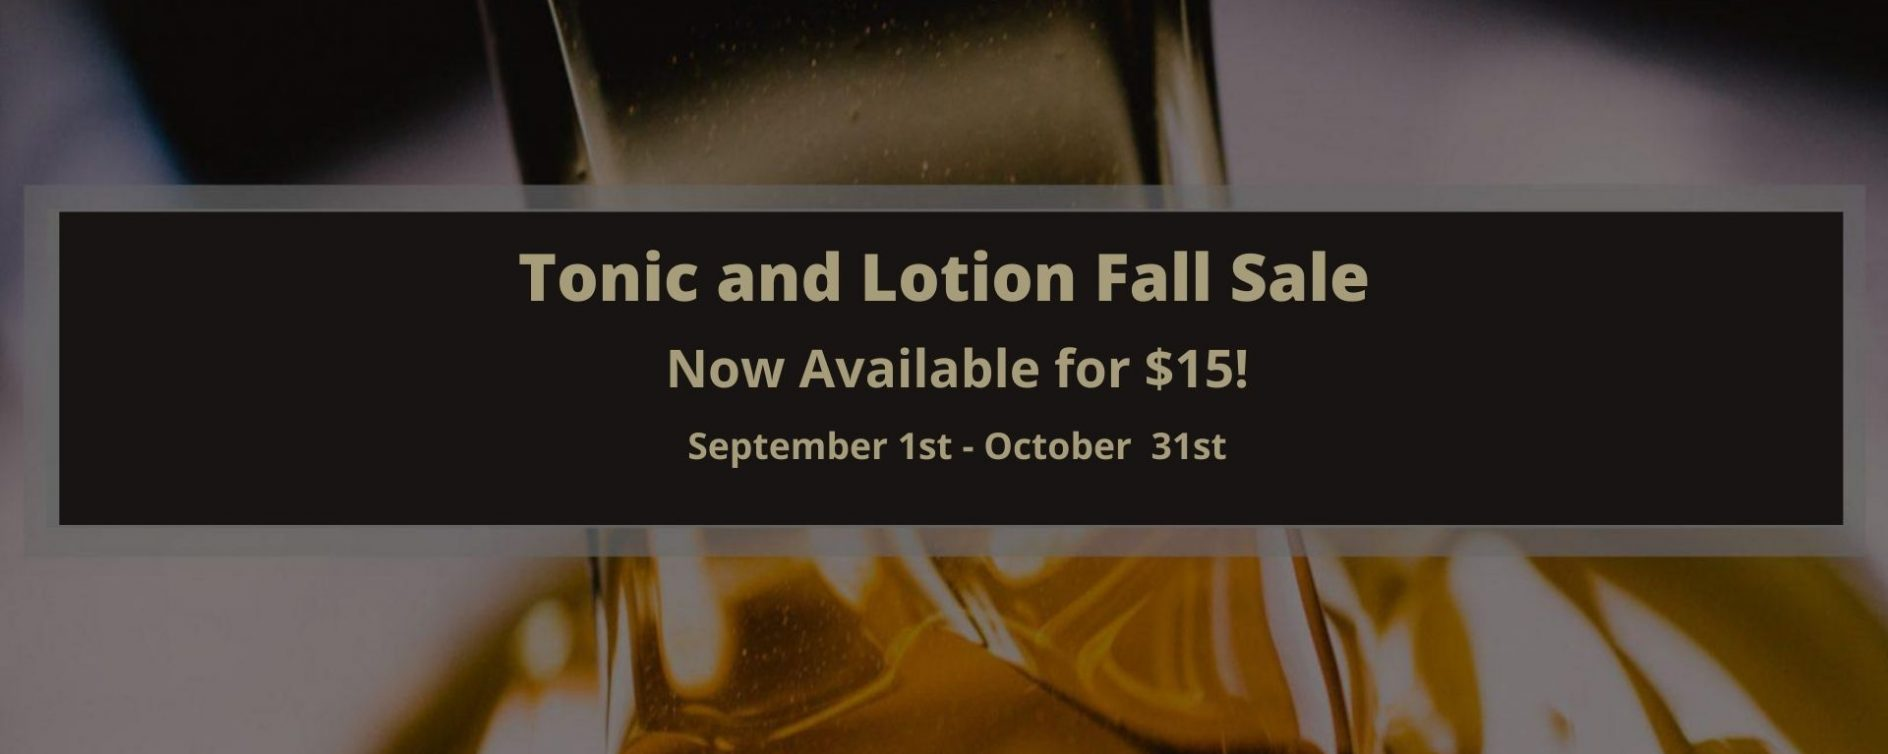 Tonic and Lotion Fall sale (2)